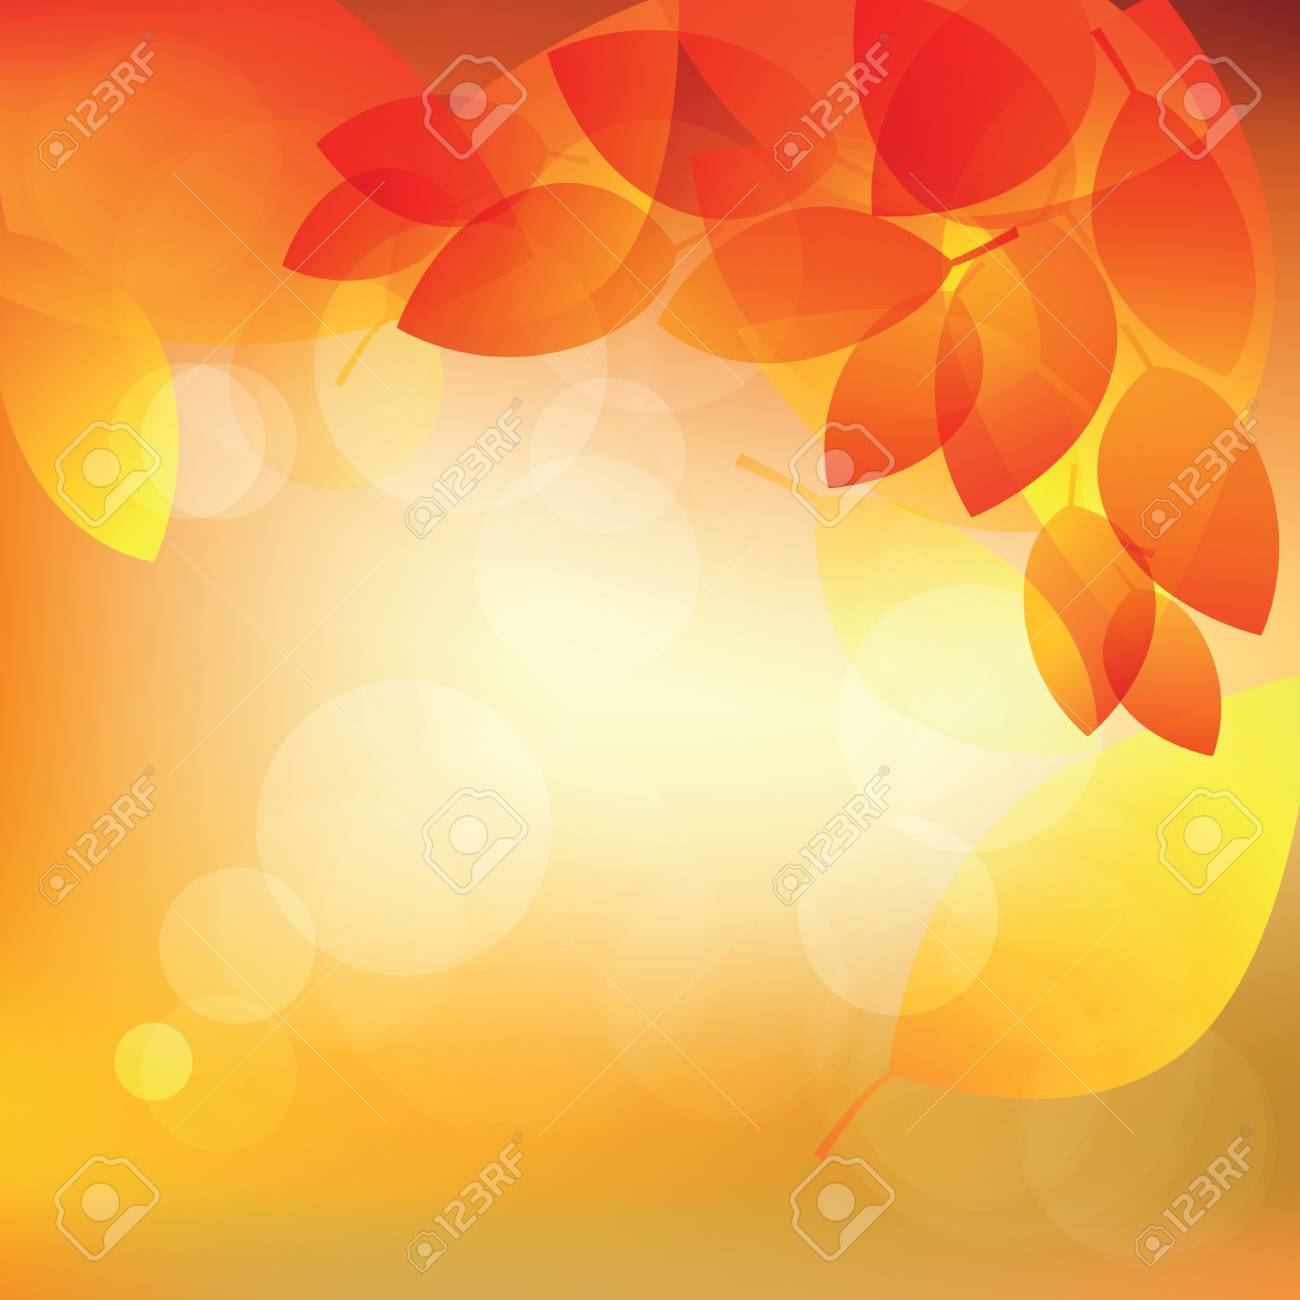 Abstract autumn sunny background with lights and leaves illustration - 62197337